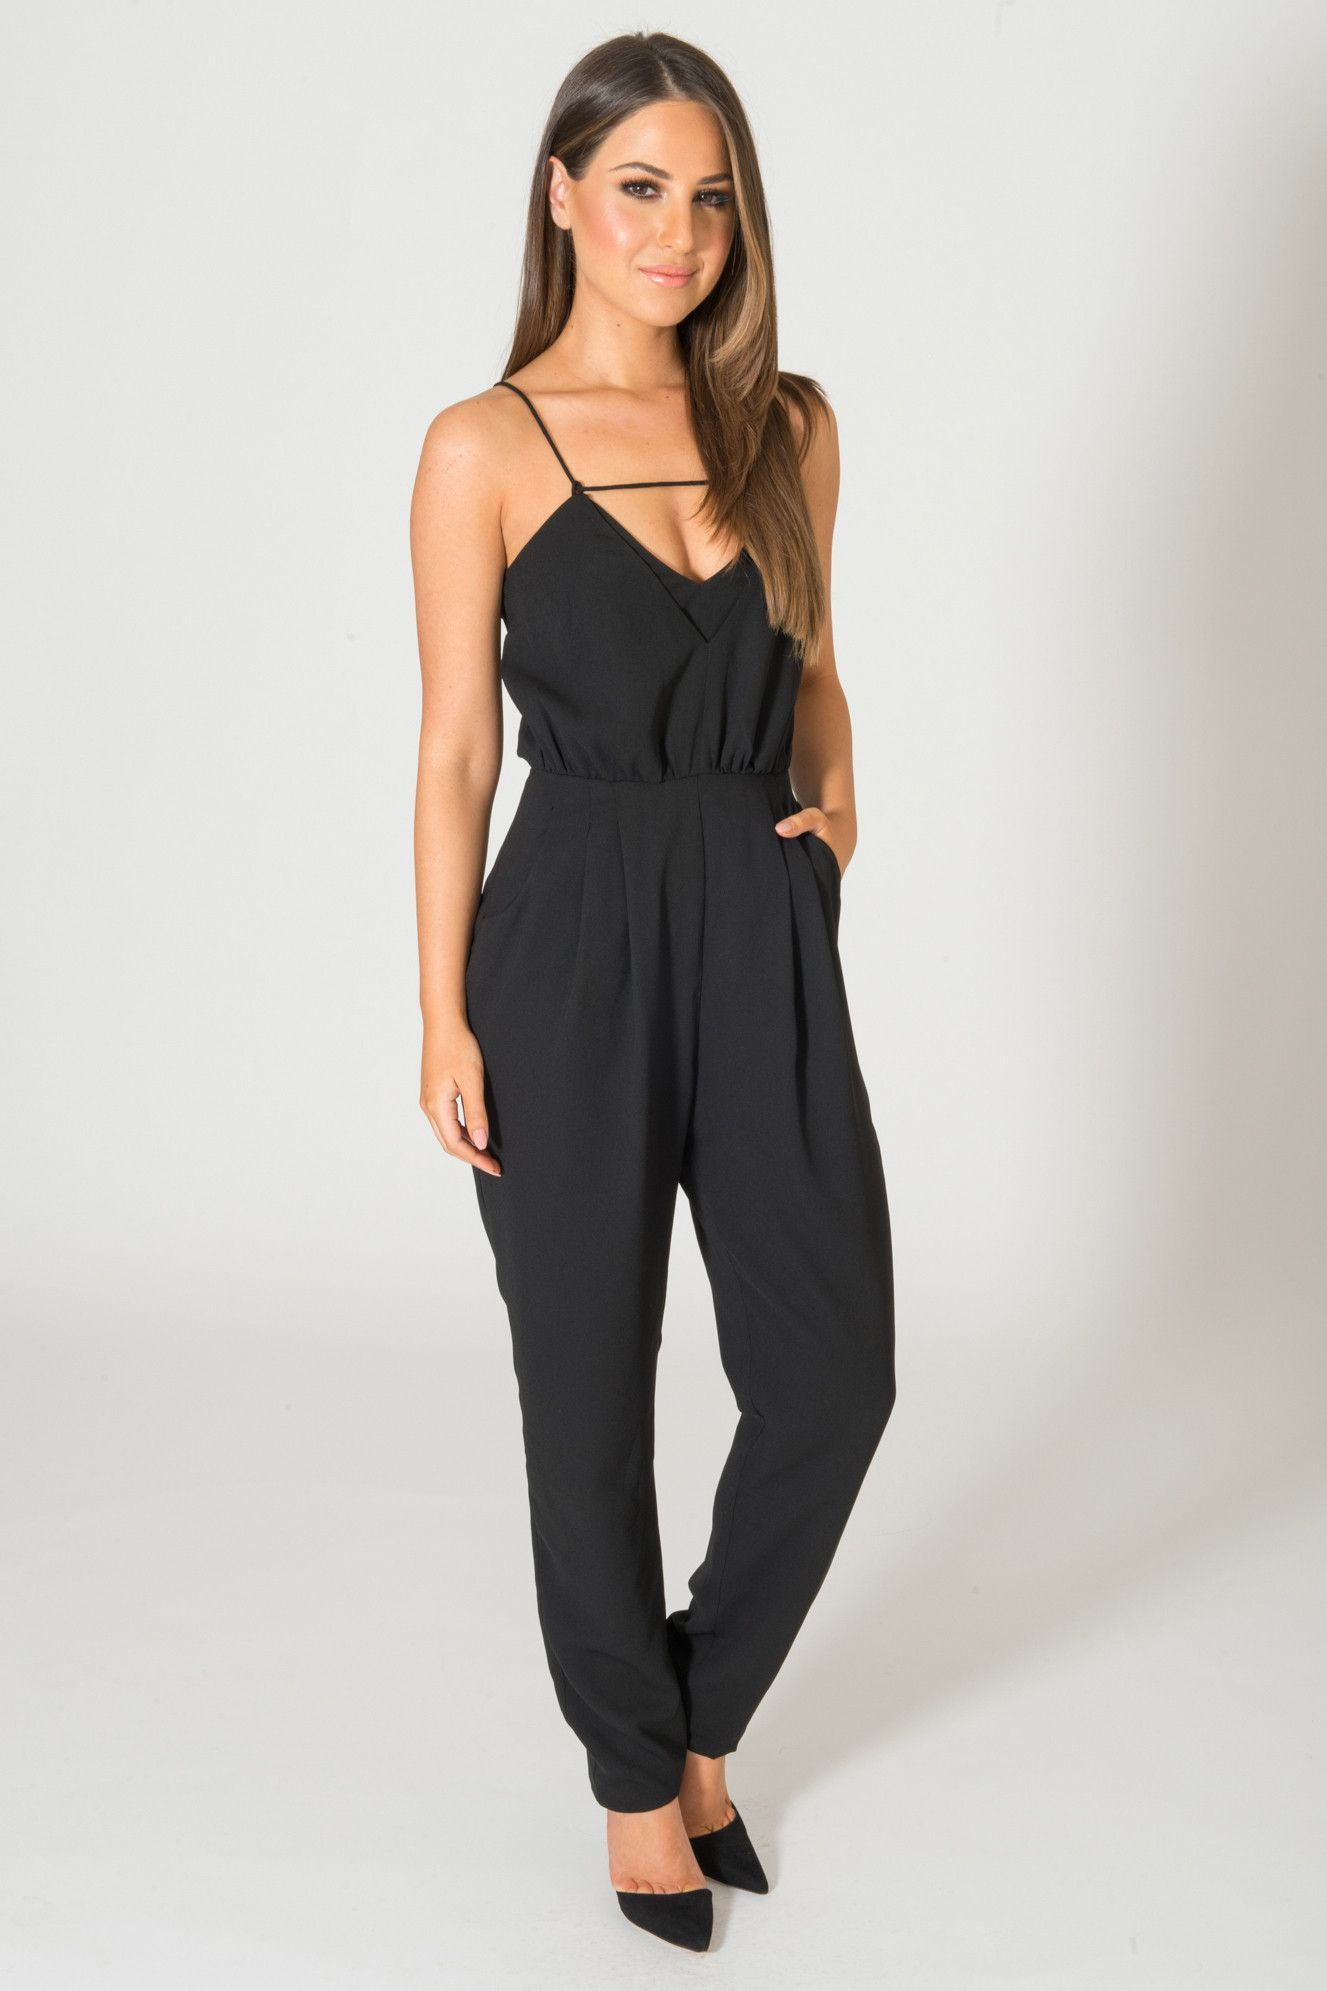 847b4f320c05 FINDERS KEEPERS THE SOMEDAY BLACK JUMPSUIT